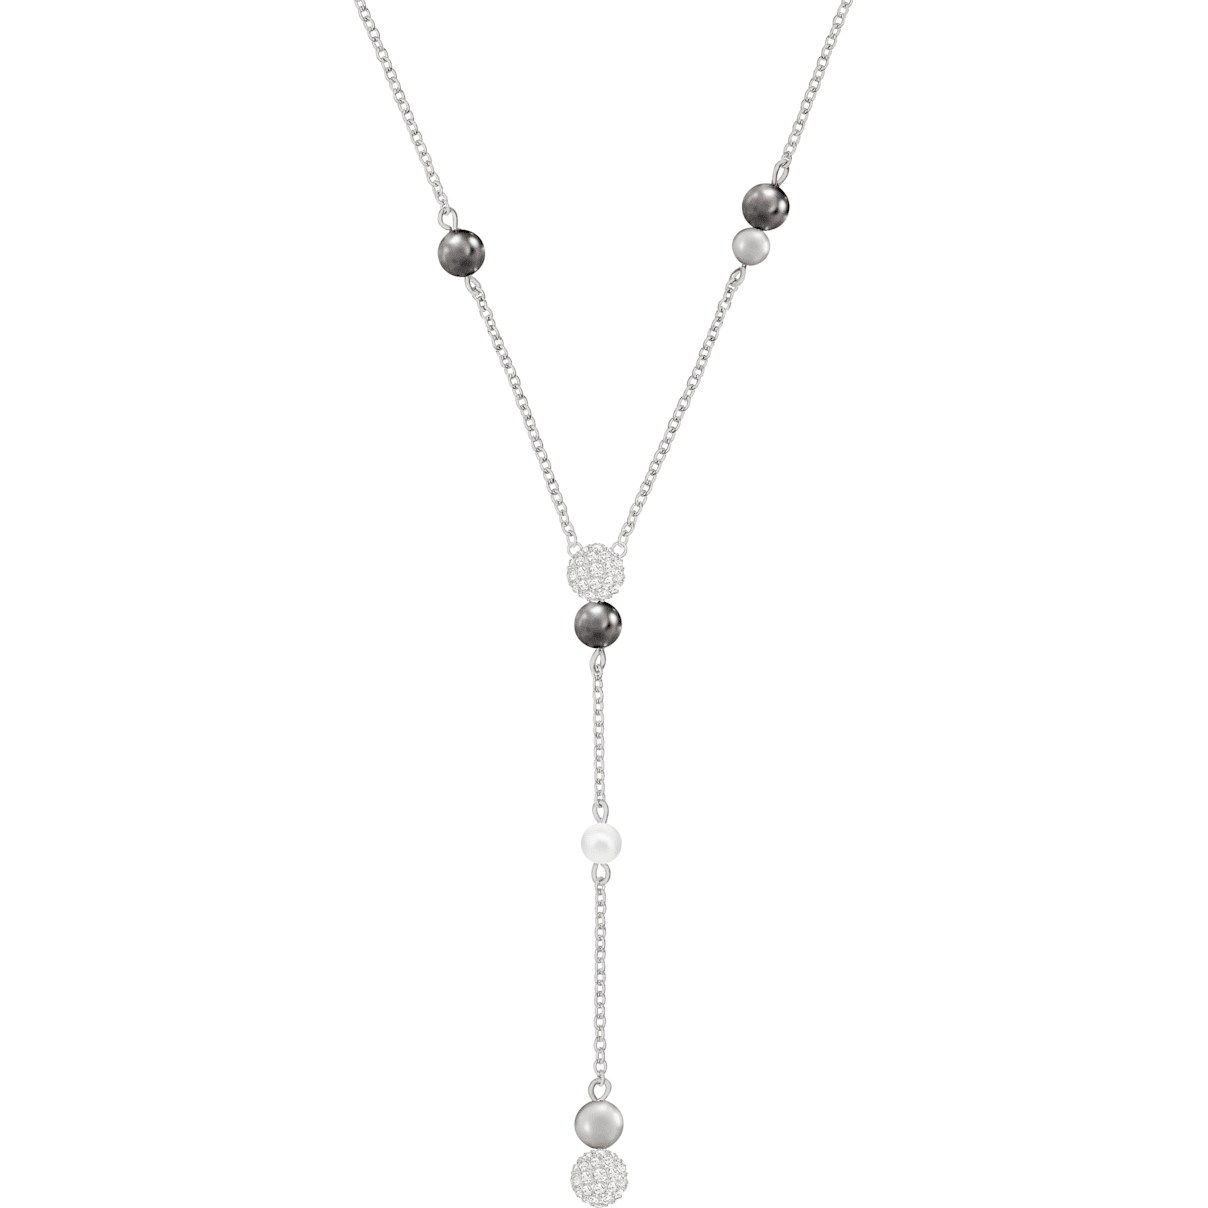 Swarovski Canopy Y Necklace, Multi-colored, Rhodium plated